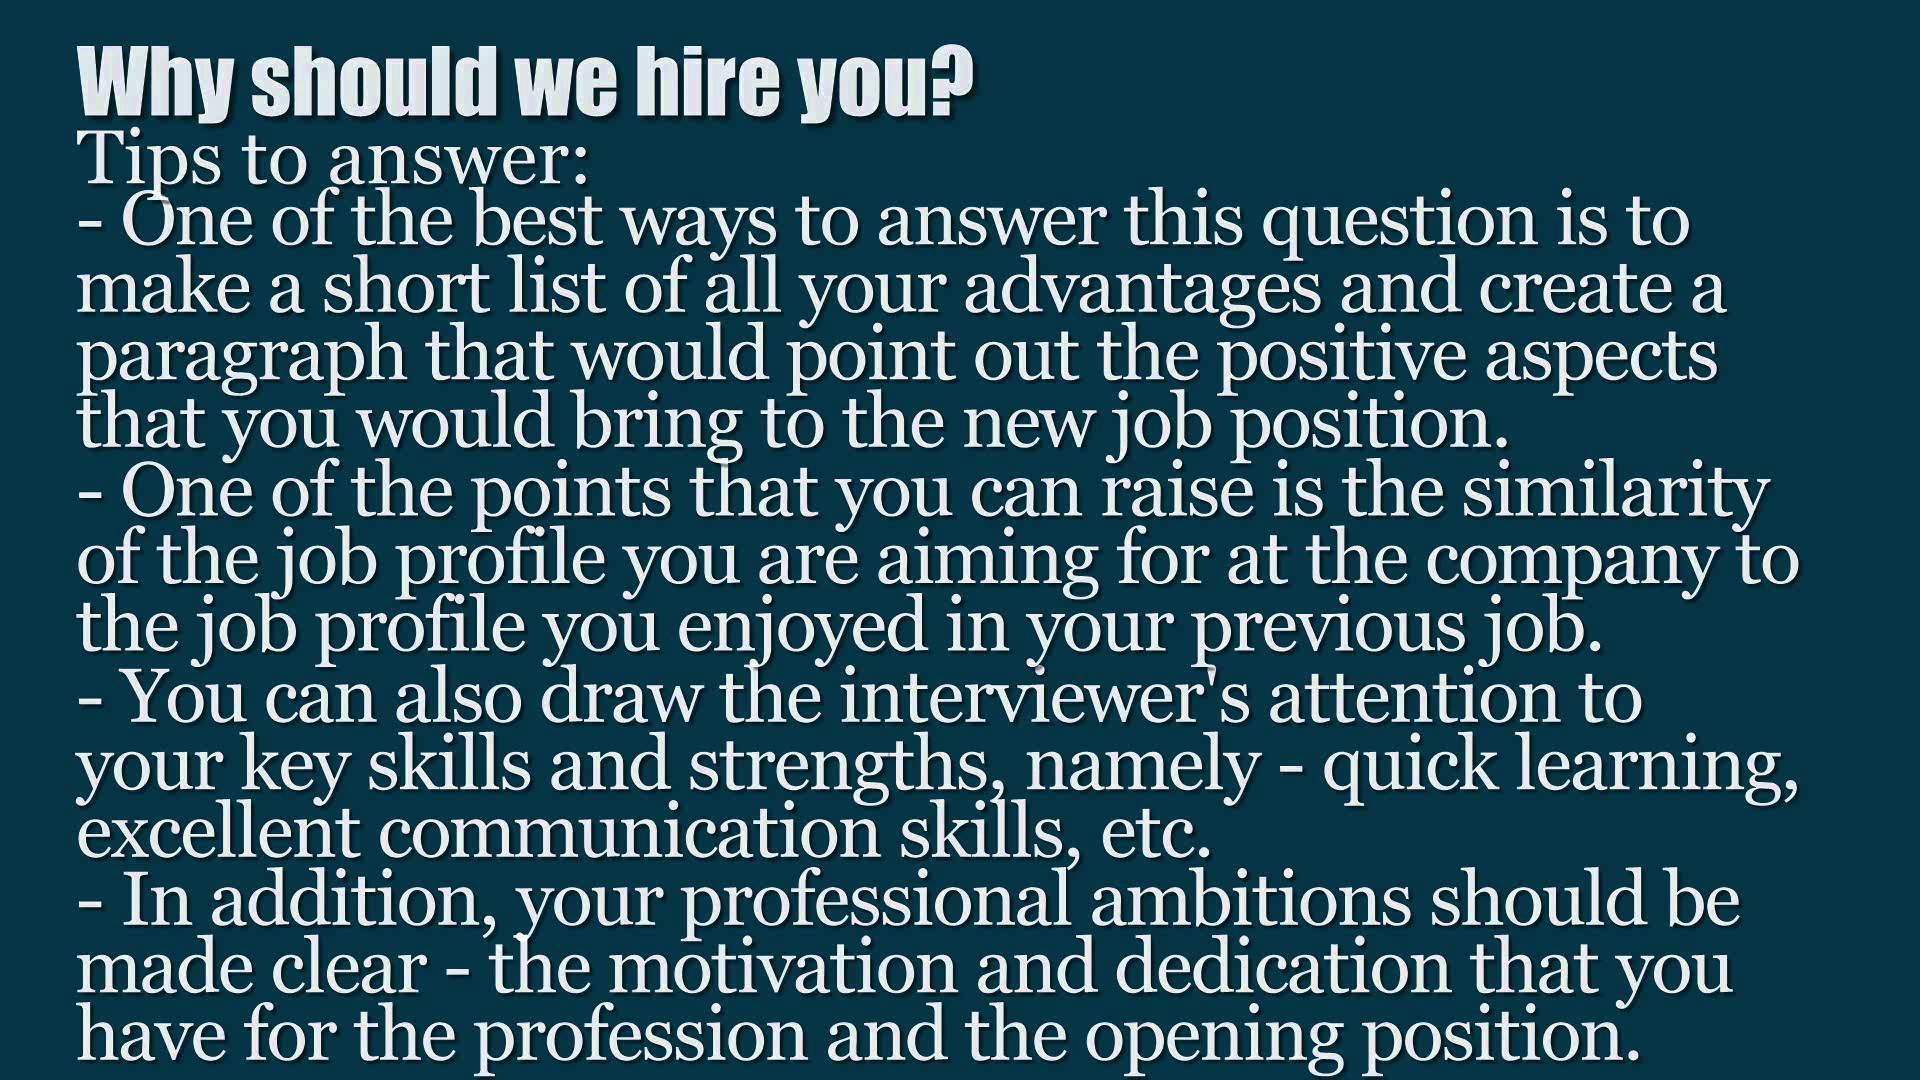 Best Accounting Interview Questions For Finding Top Talent 1 Site For Police Oral Board Interview Questions And Answers